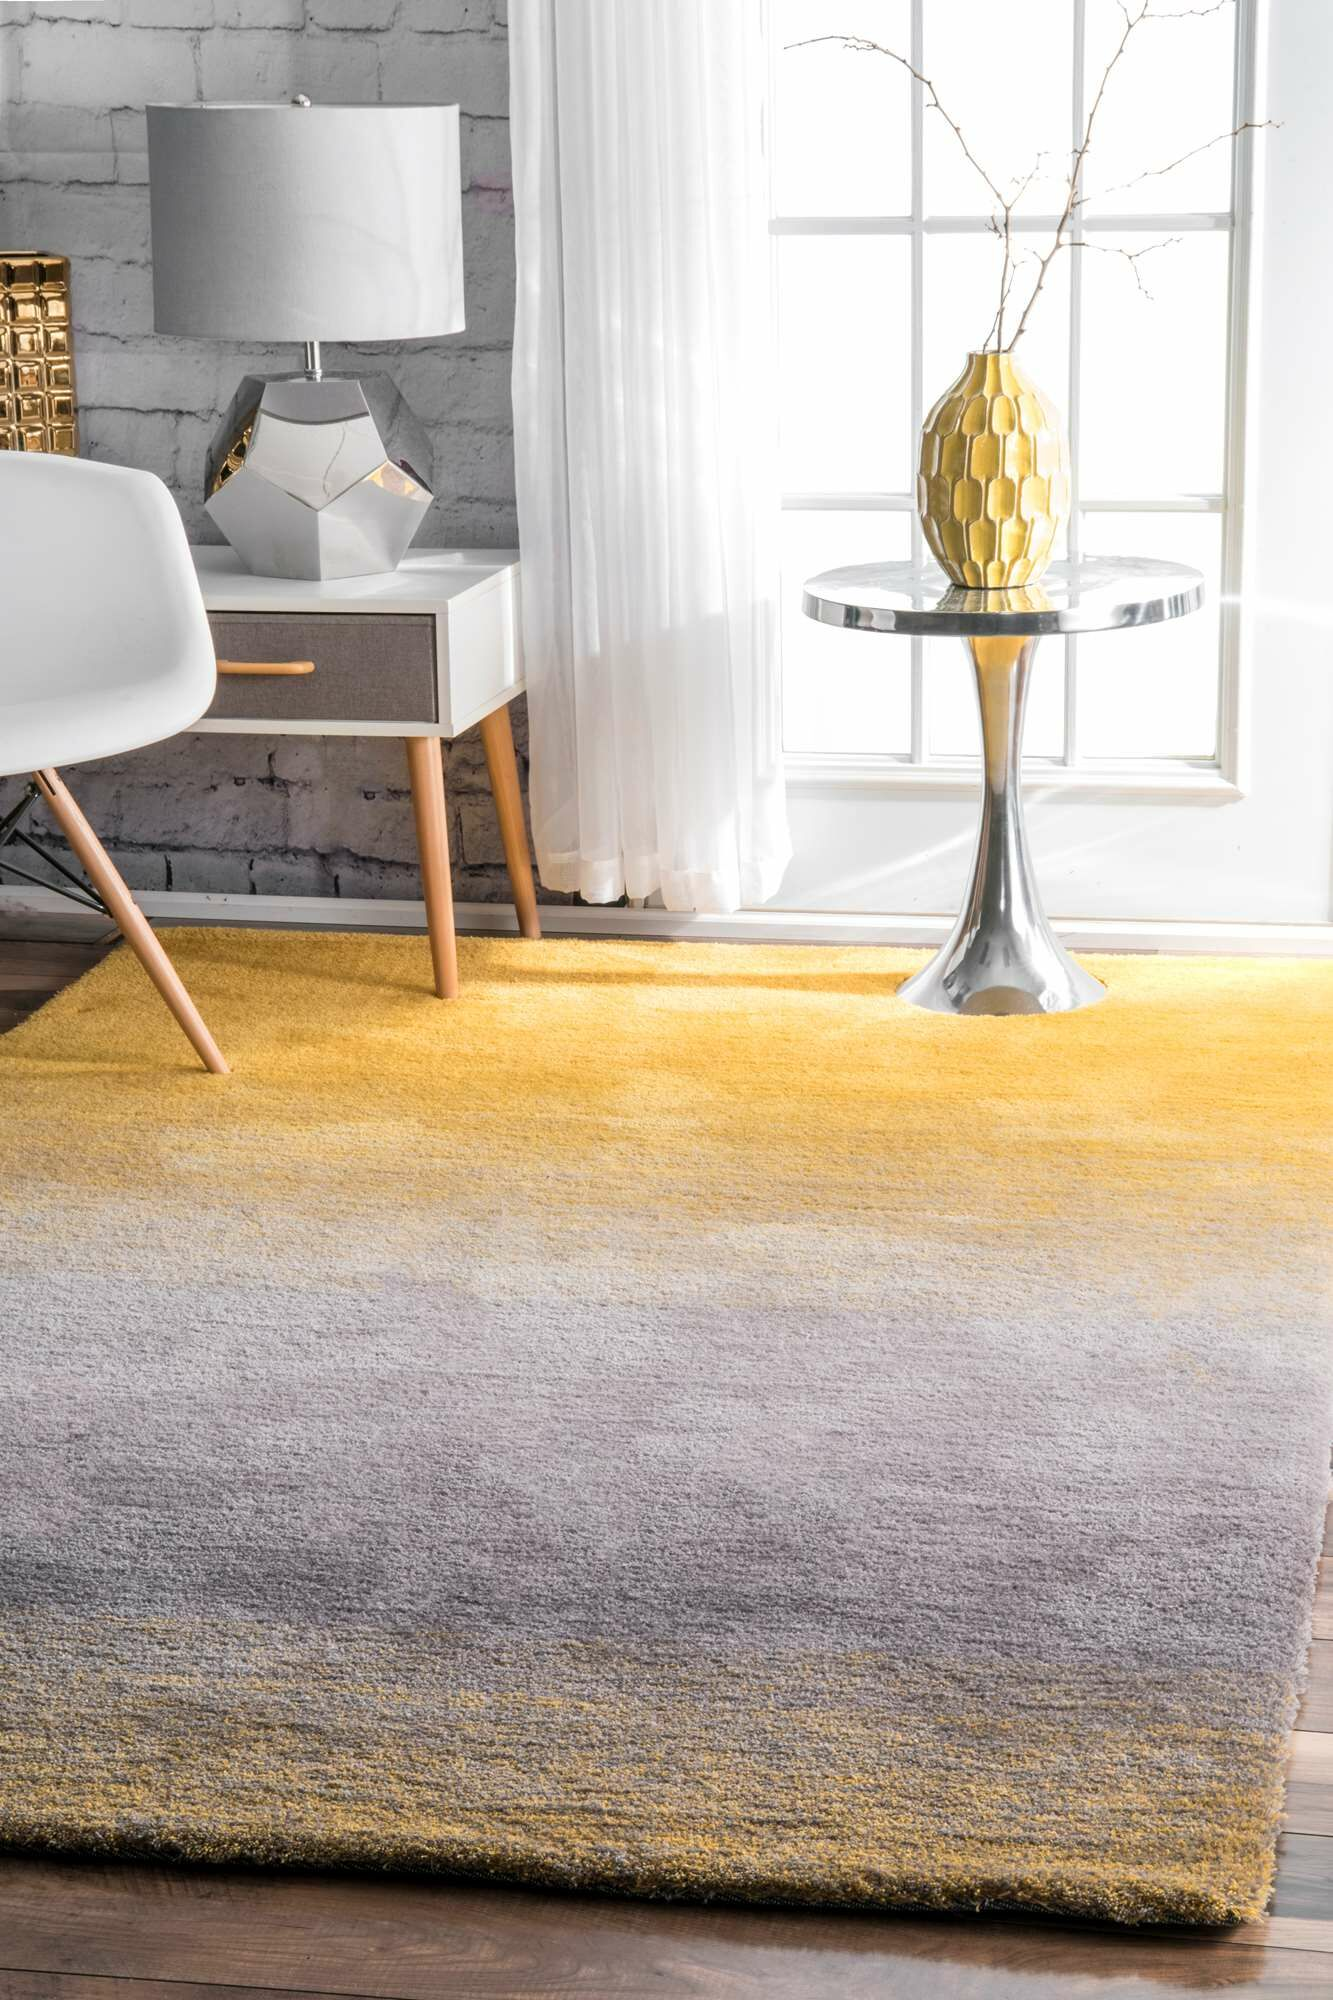 Kral Hand-Tufted Yellow Area Rug Rug Size: Runner 2'6